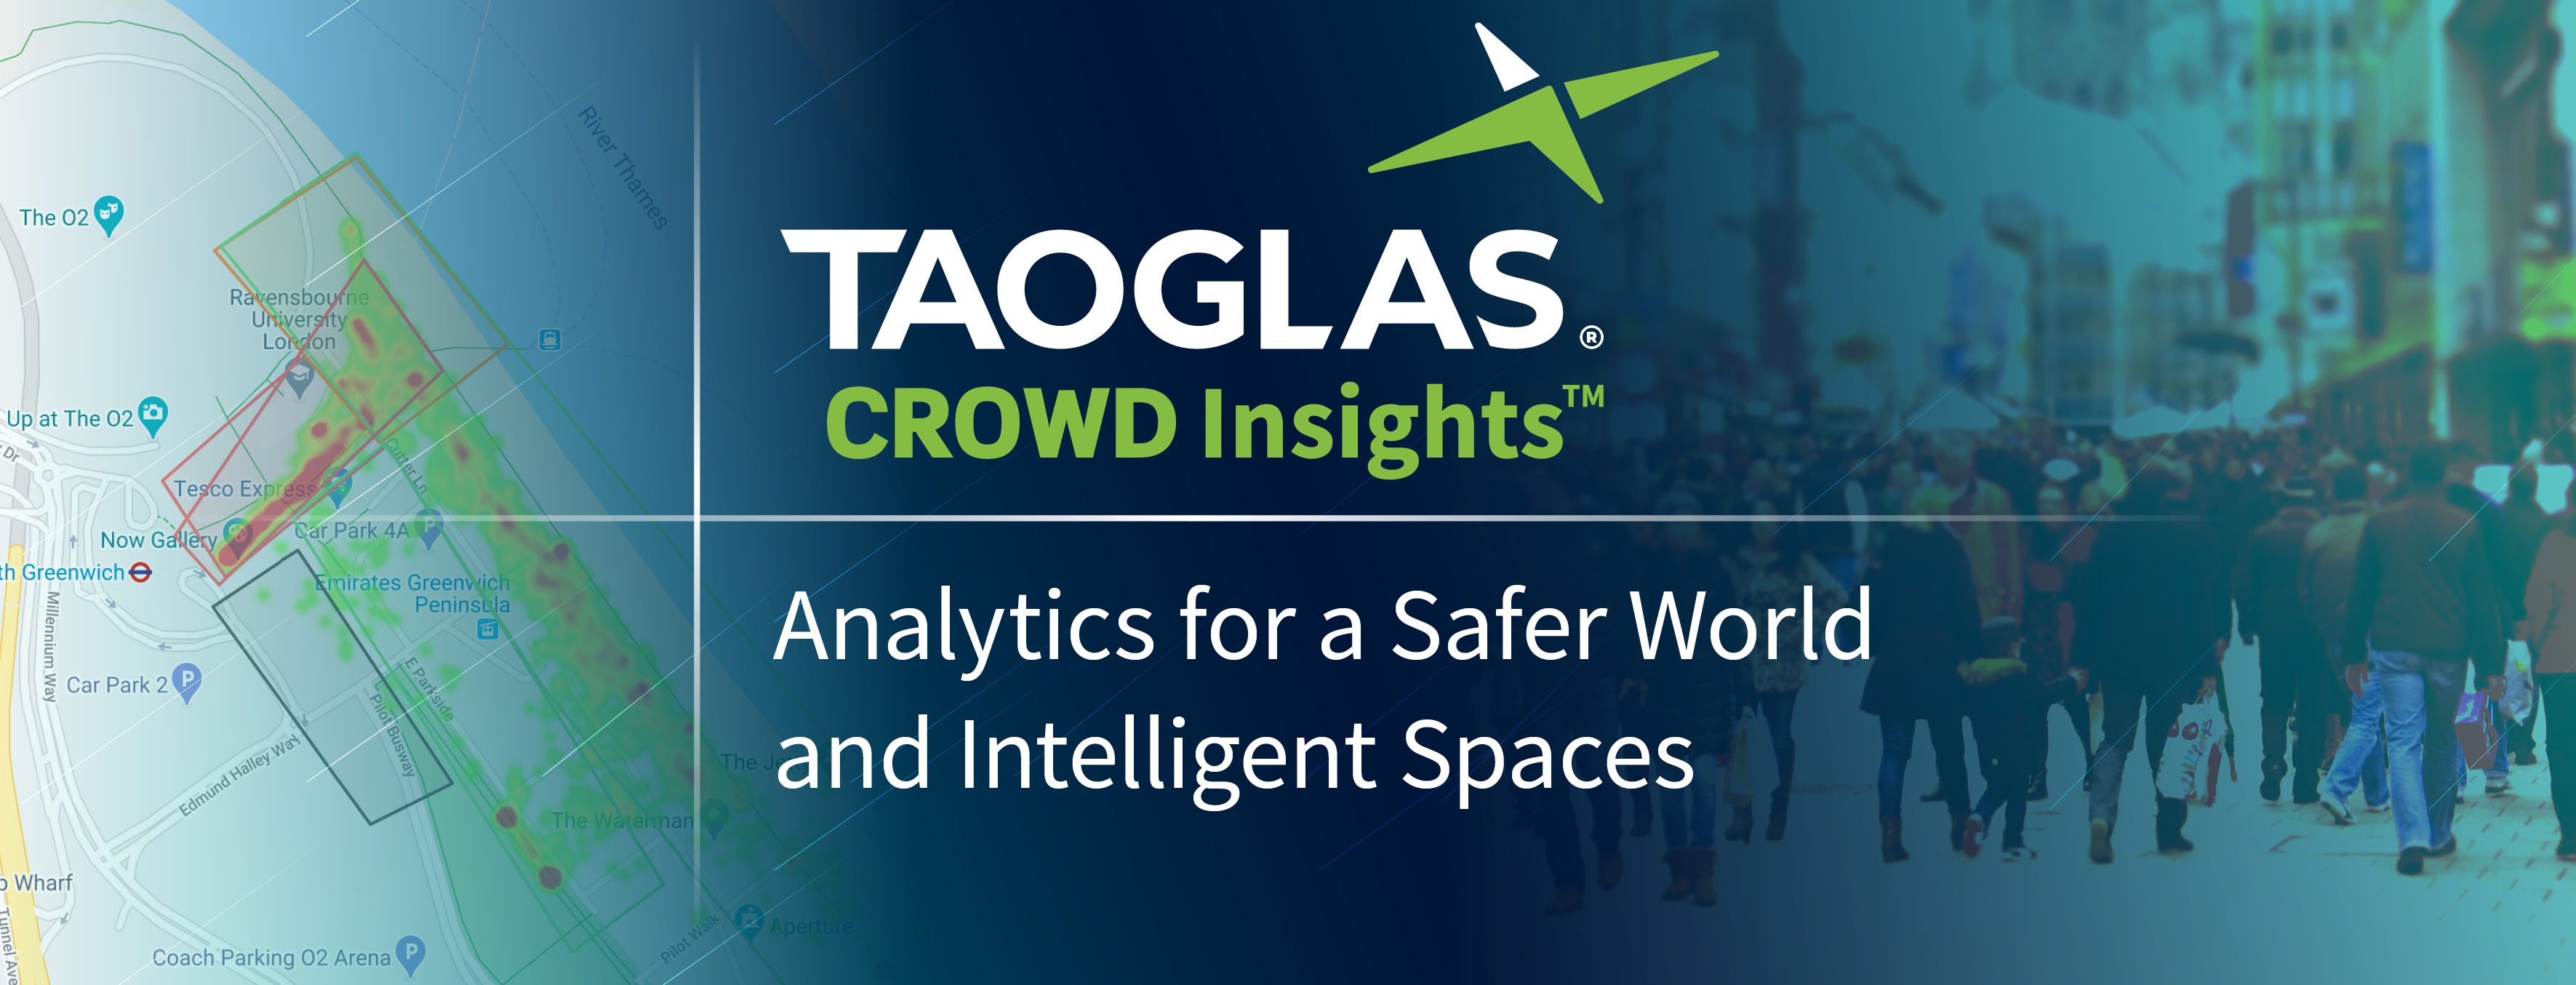 Image for Webinar: Introducing Taoglas CROWD Insights™